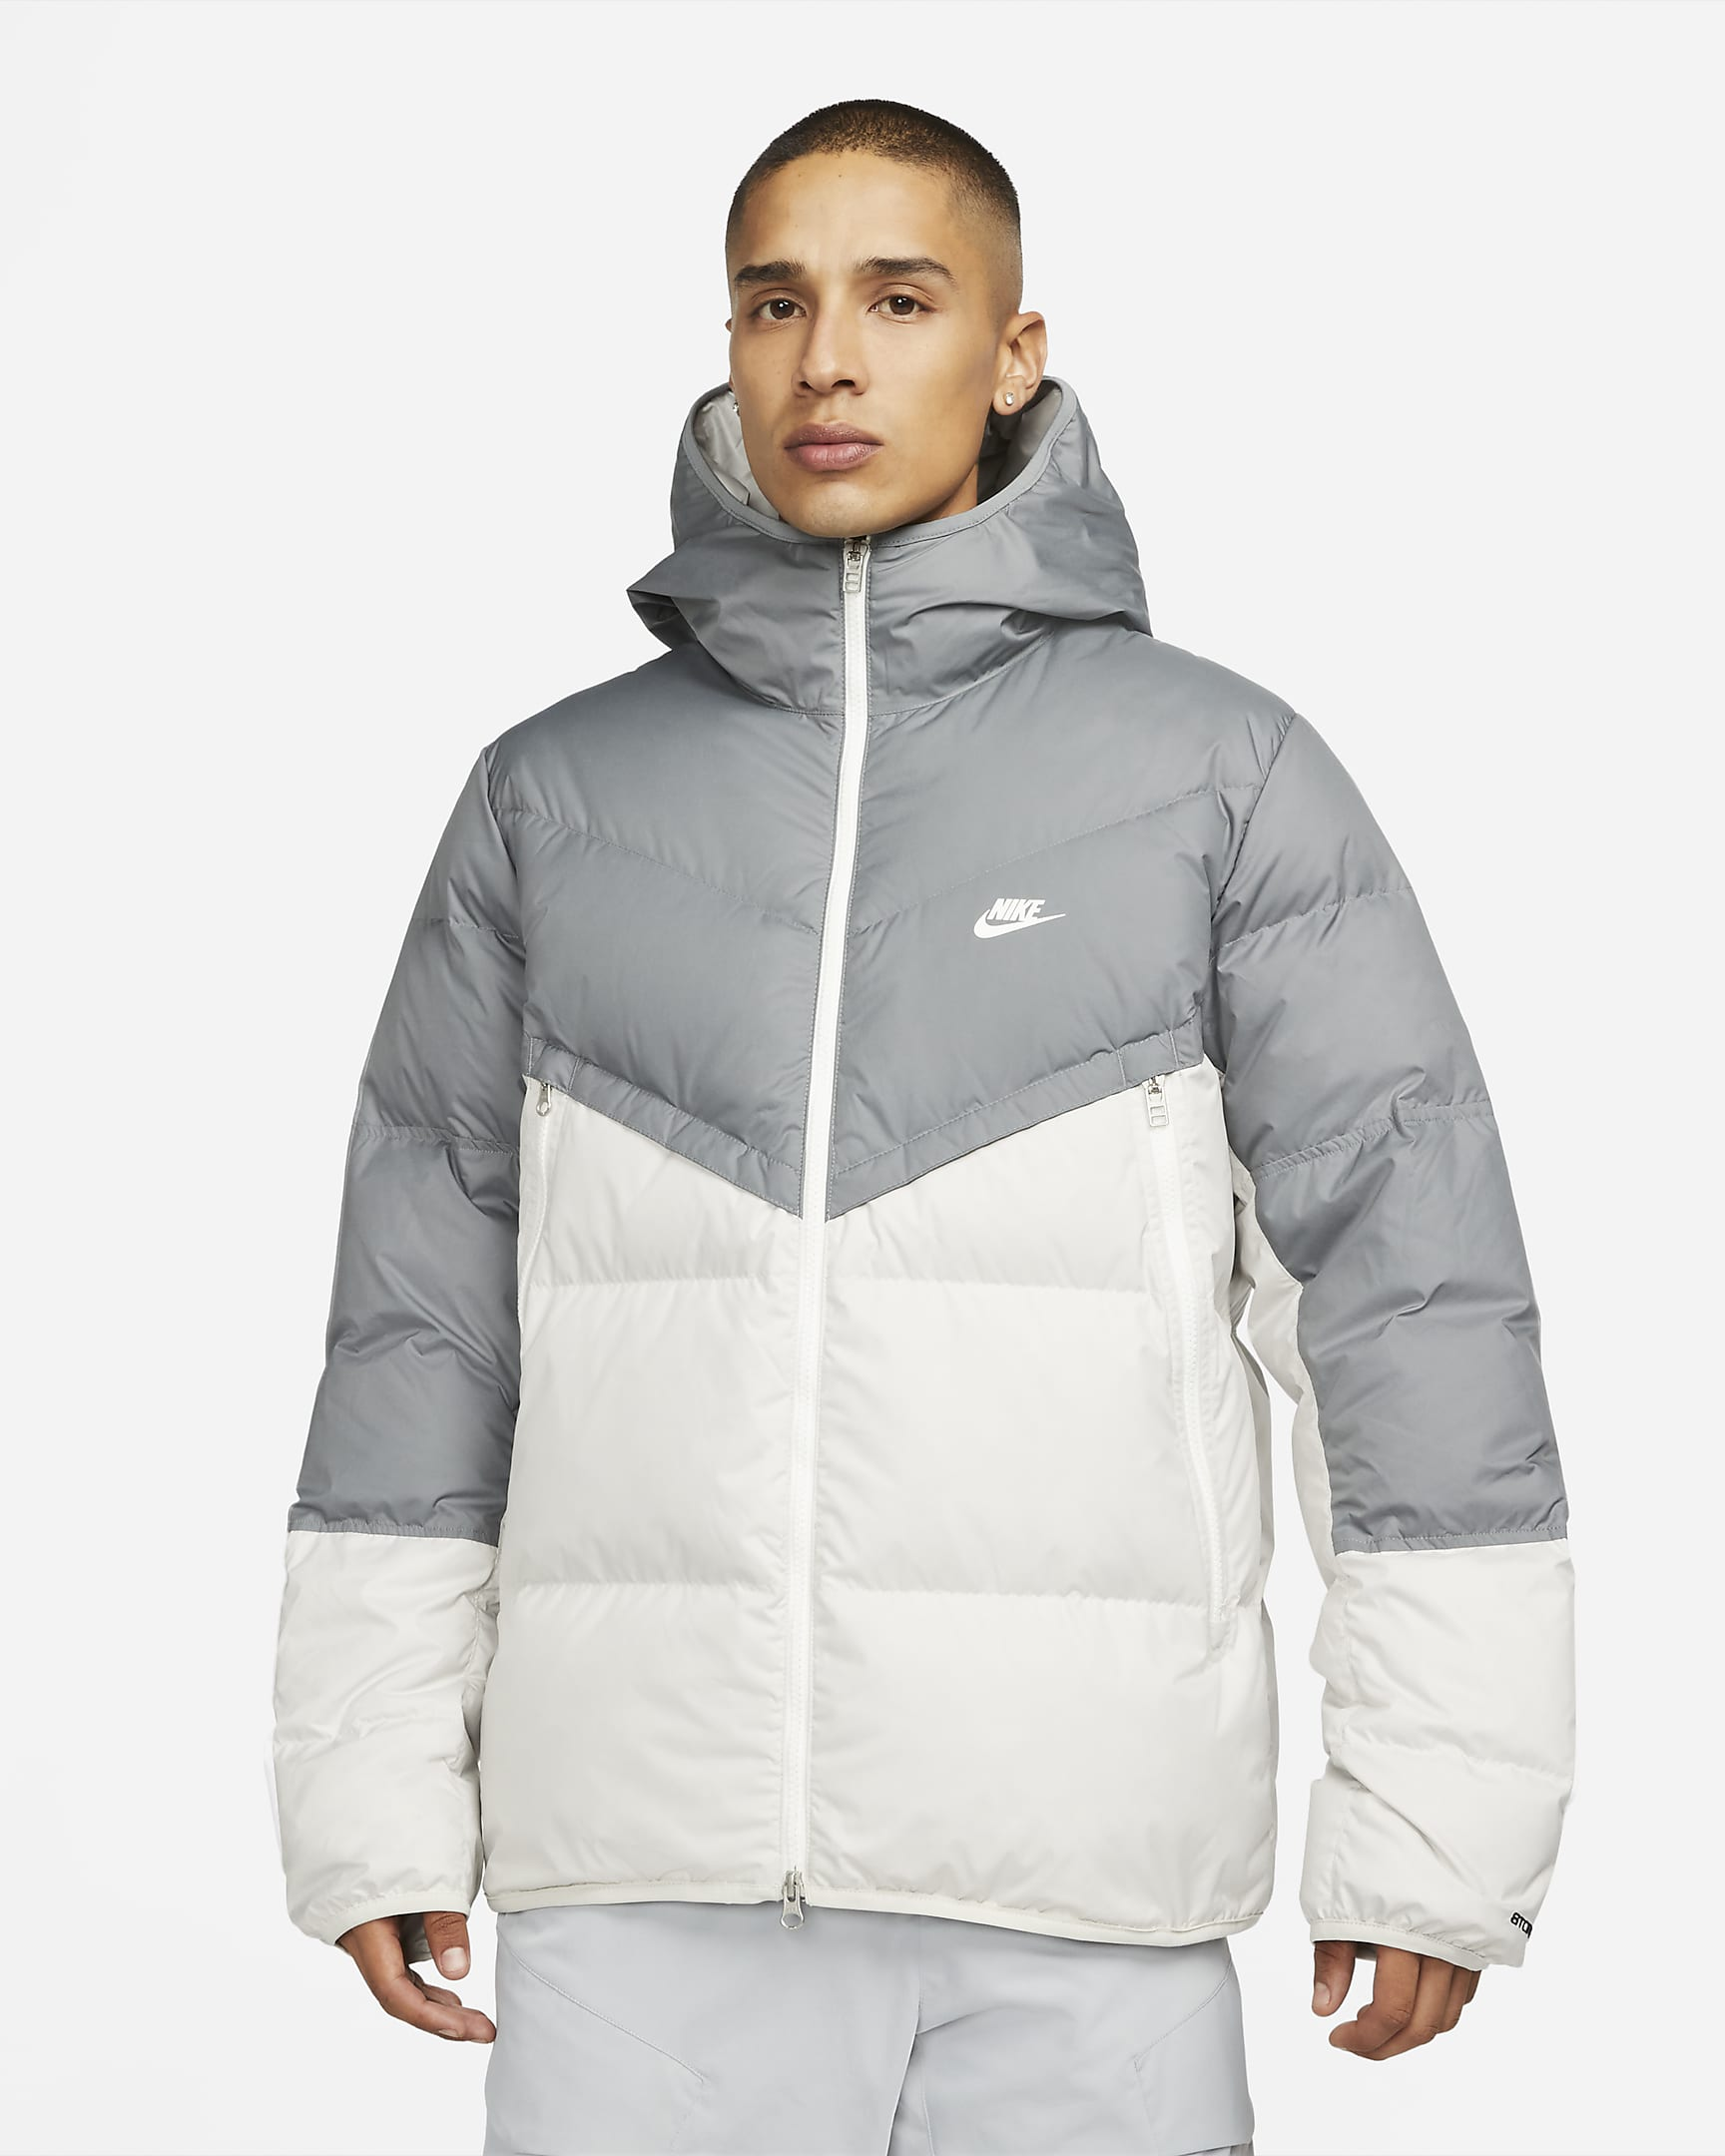 nike-sportswear-storm-fit-windrunner-mens-hooded-jacket-1XlGm6.png